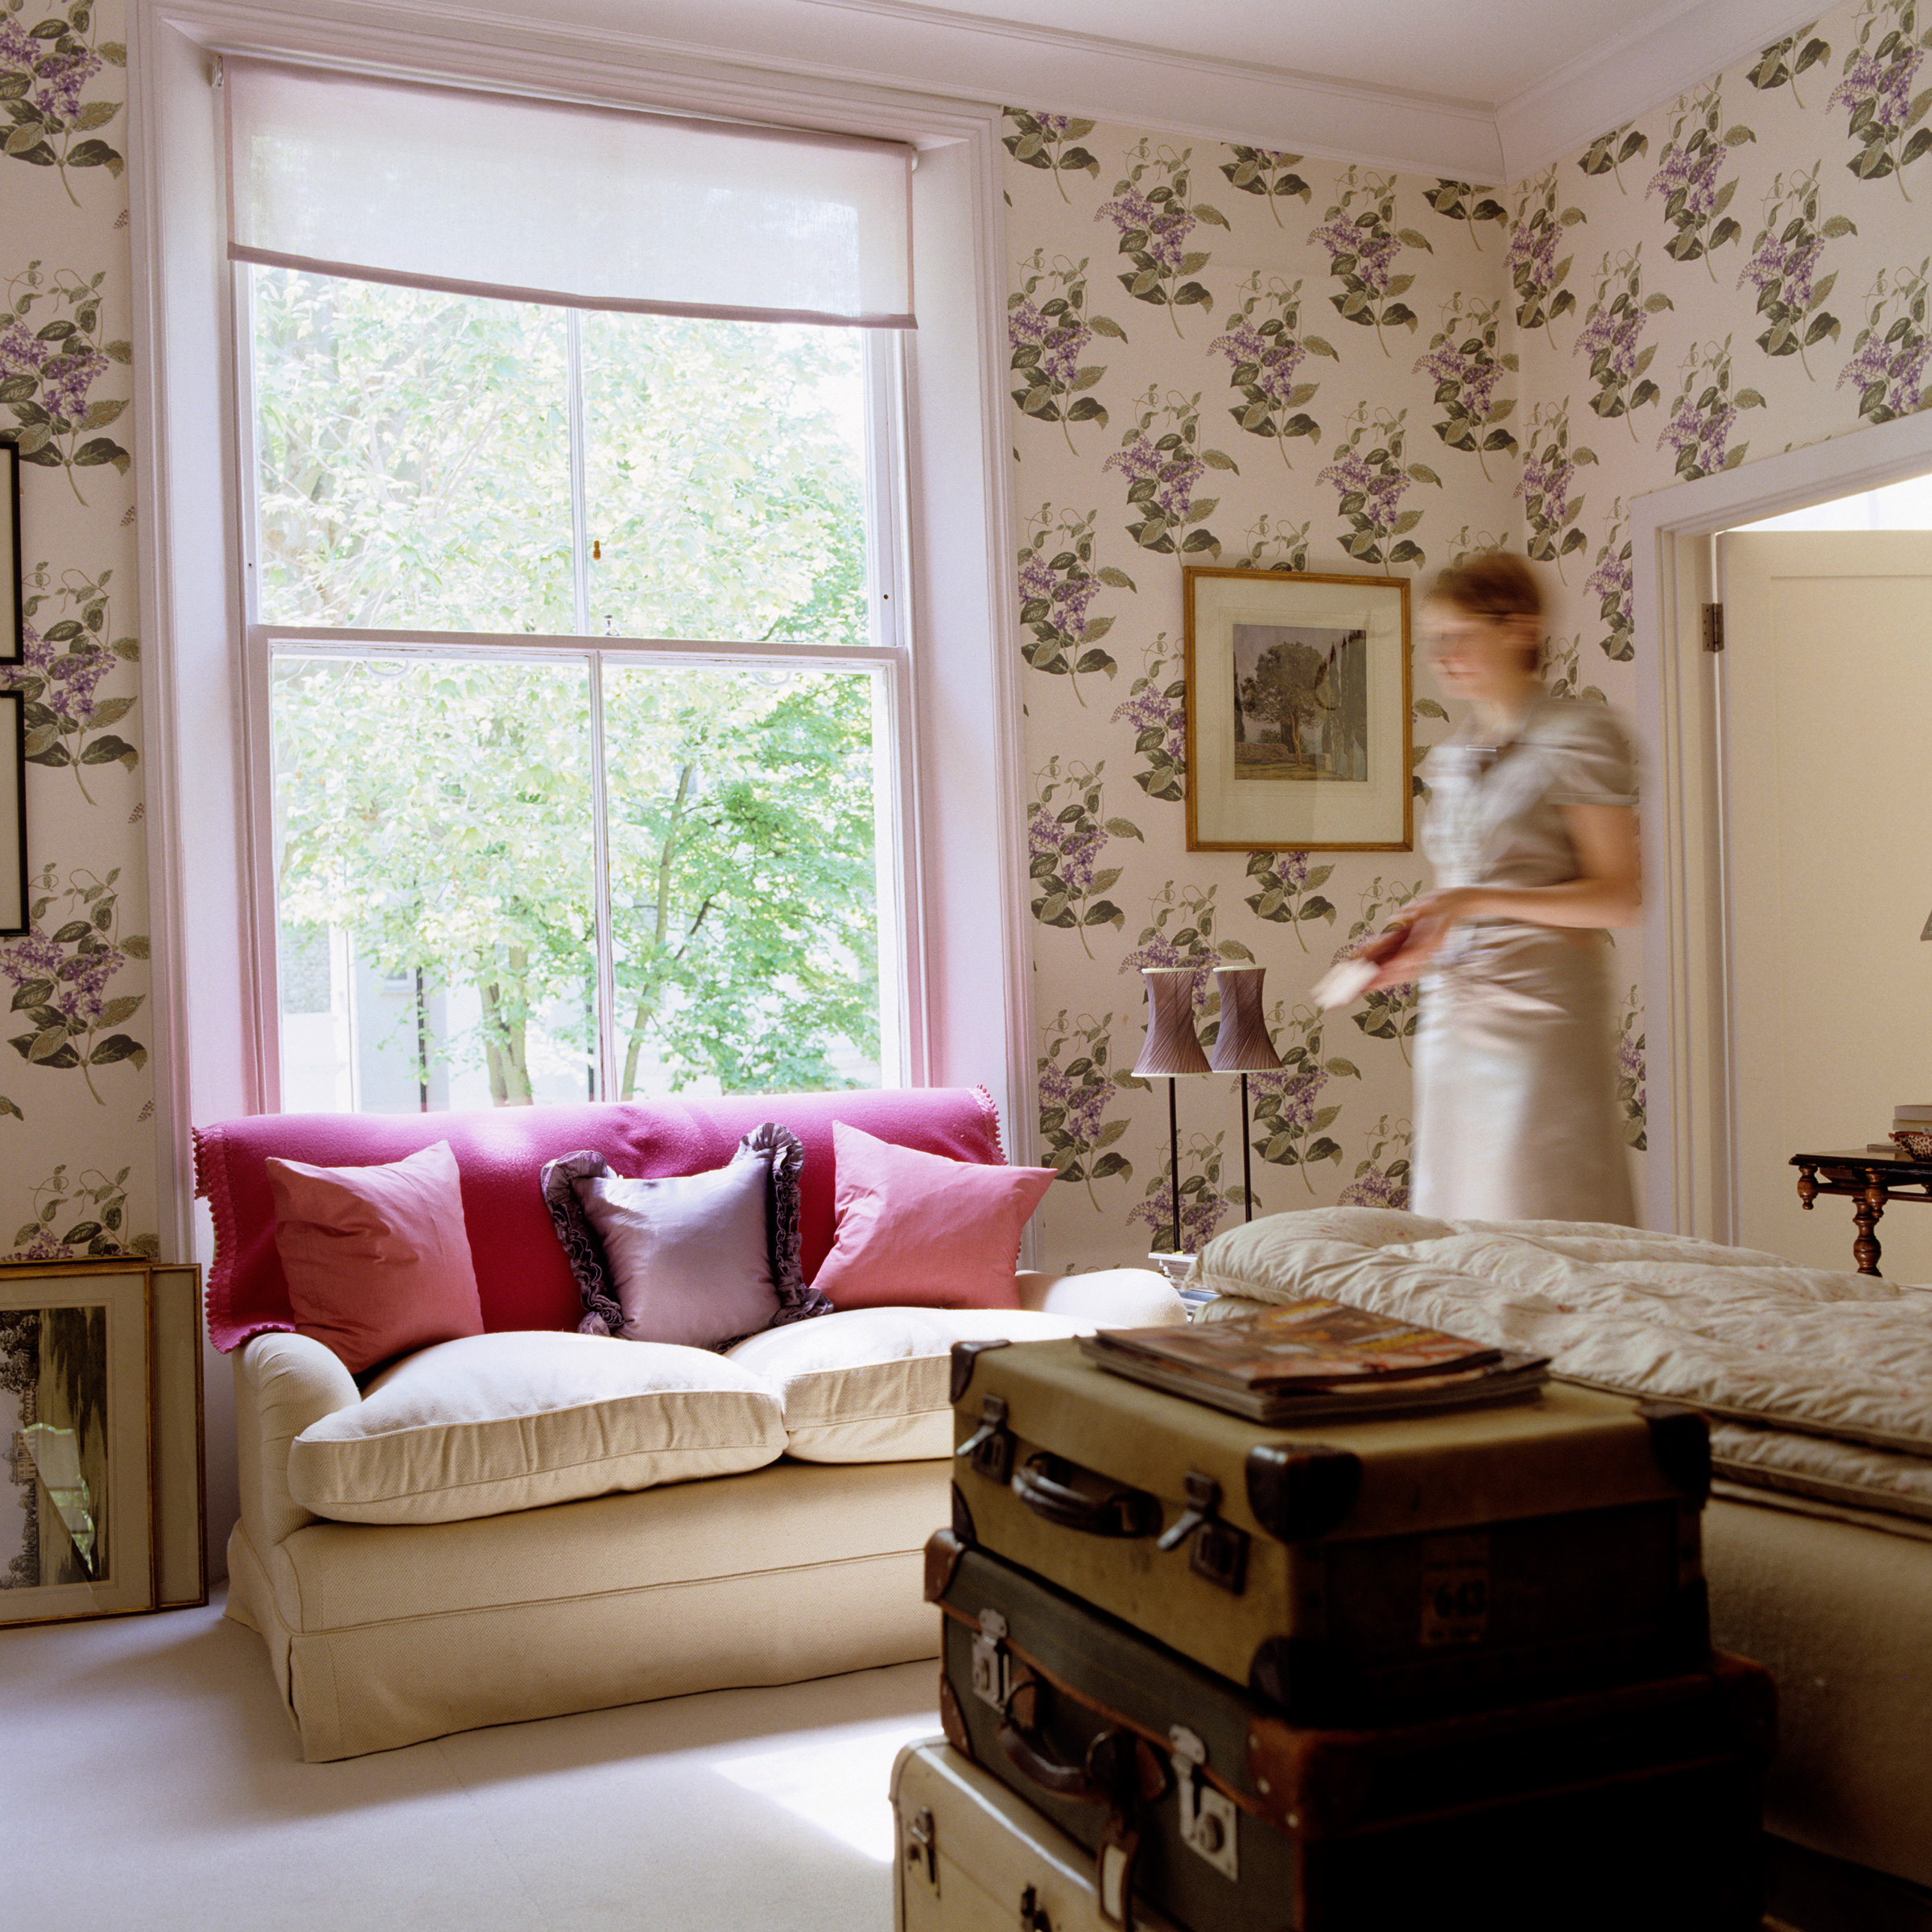 Cole and Son Wallpaper Madras Violet Rita Konig London Bedroom